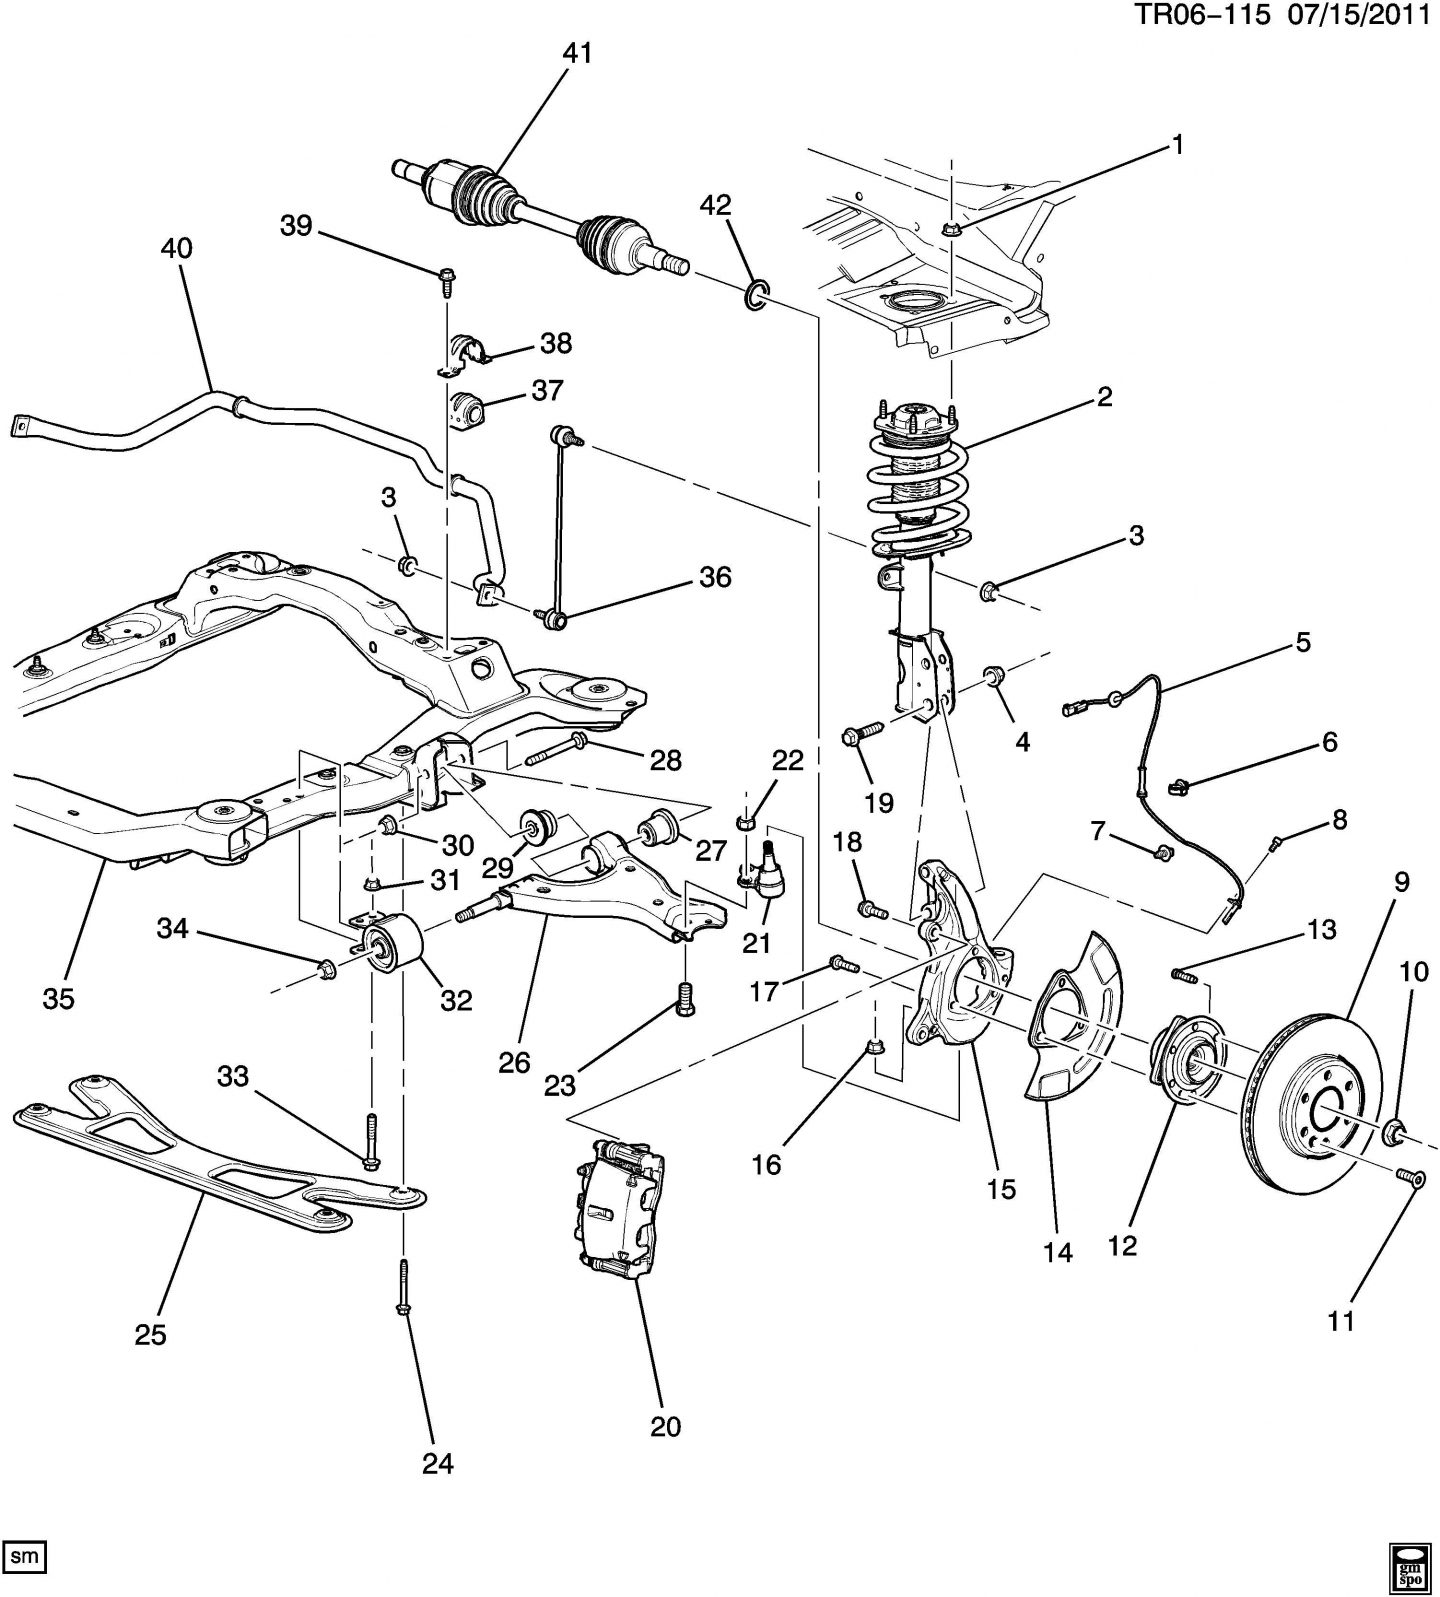 Chevy Silverado Drawing At Free For Personal Use 1990 Truck Ke Light Wiring Diagram 1440x1597 Trailer Hitch Pin Standardside Seven